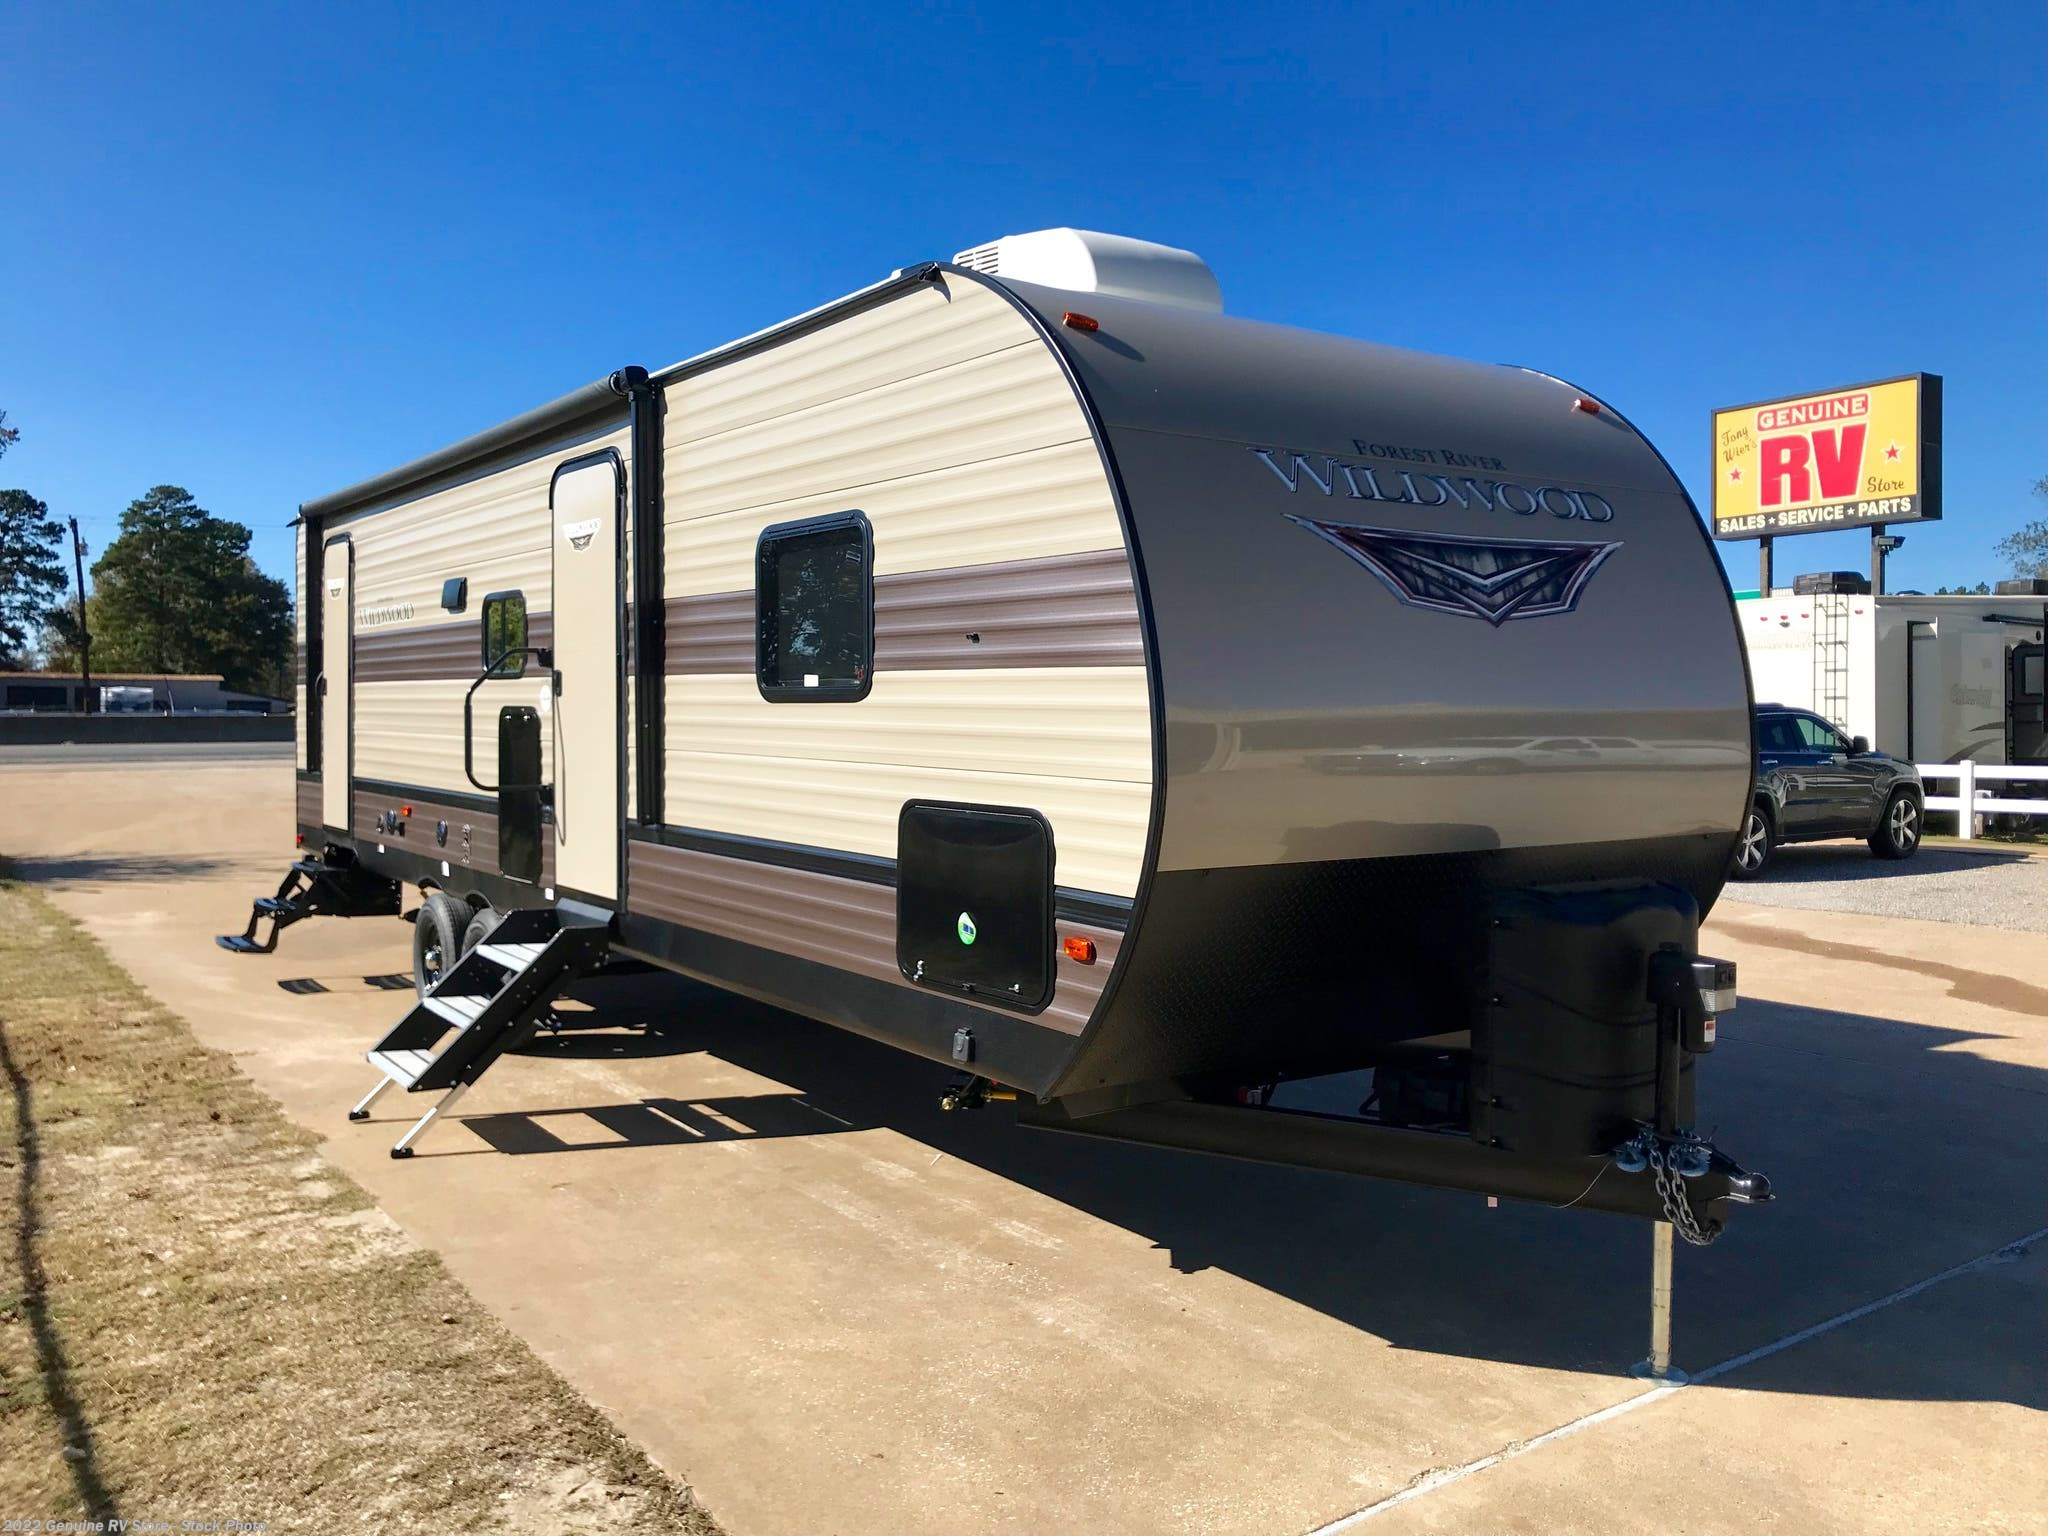 2020 Forest River RV Wildwood 26DBUD for Sale in Nacogdoches, TX 75964    Approximate Arrival Date: 8/30/19